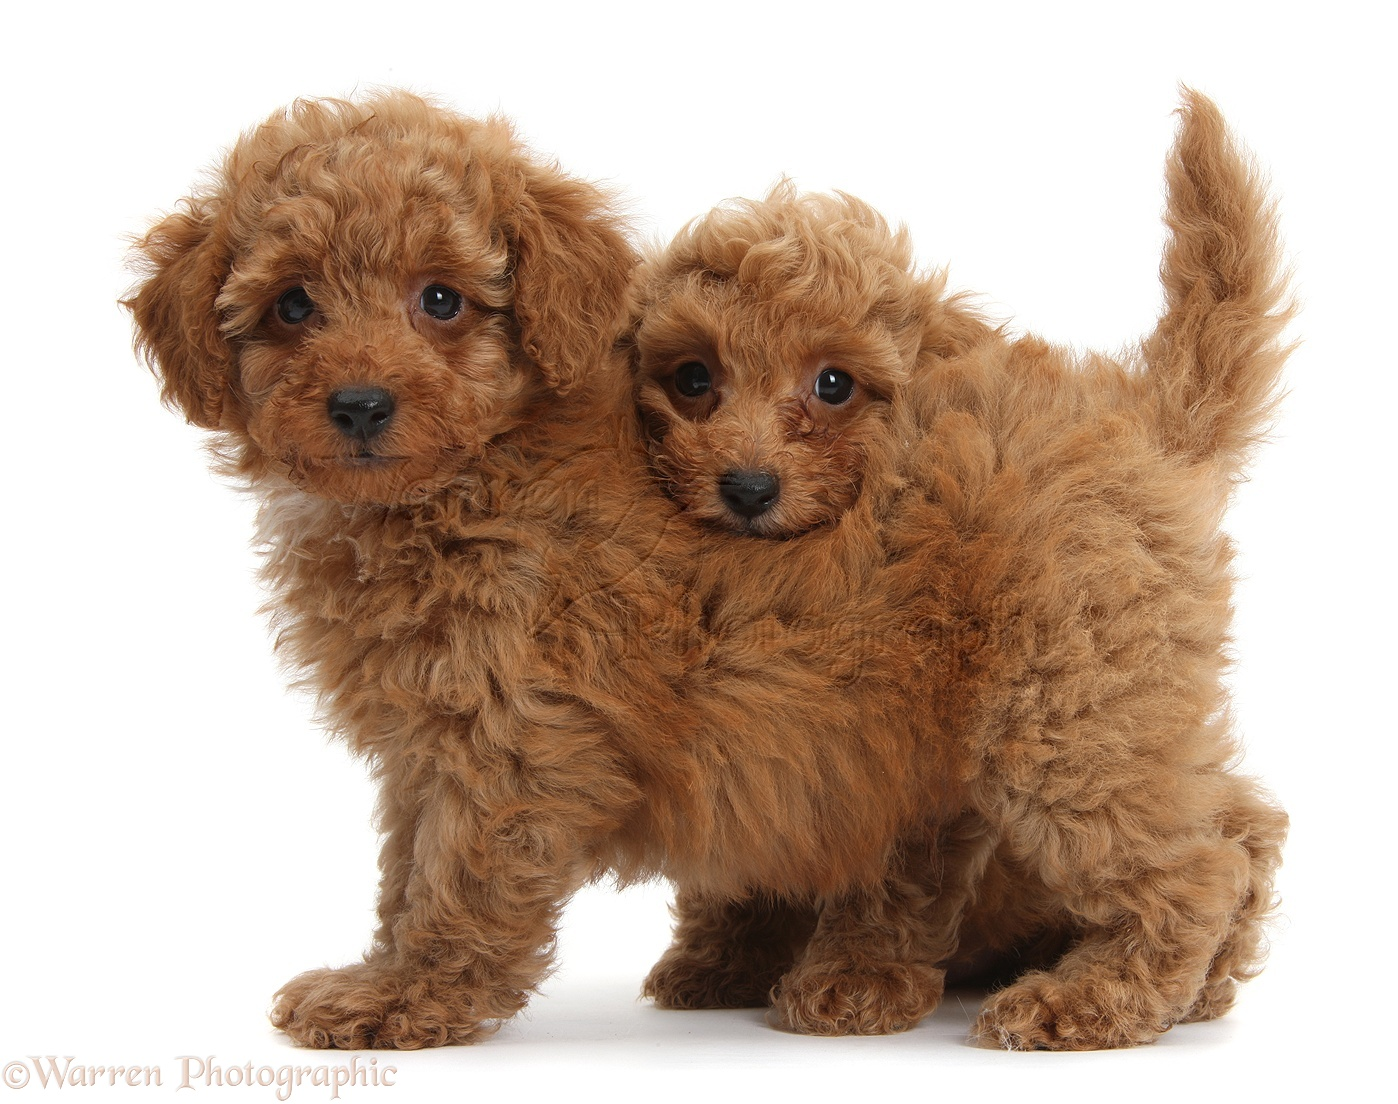 Red Toy Dogs : Dogs two cute red toy poodle puppies photo wp